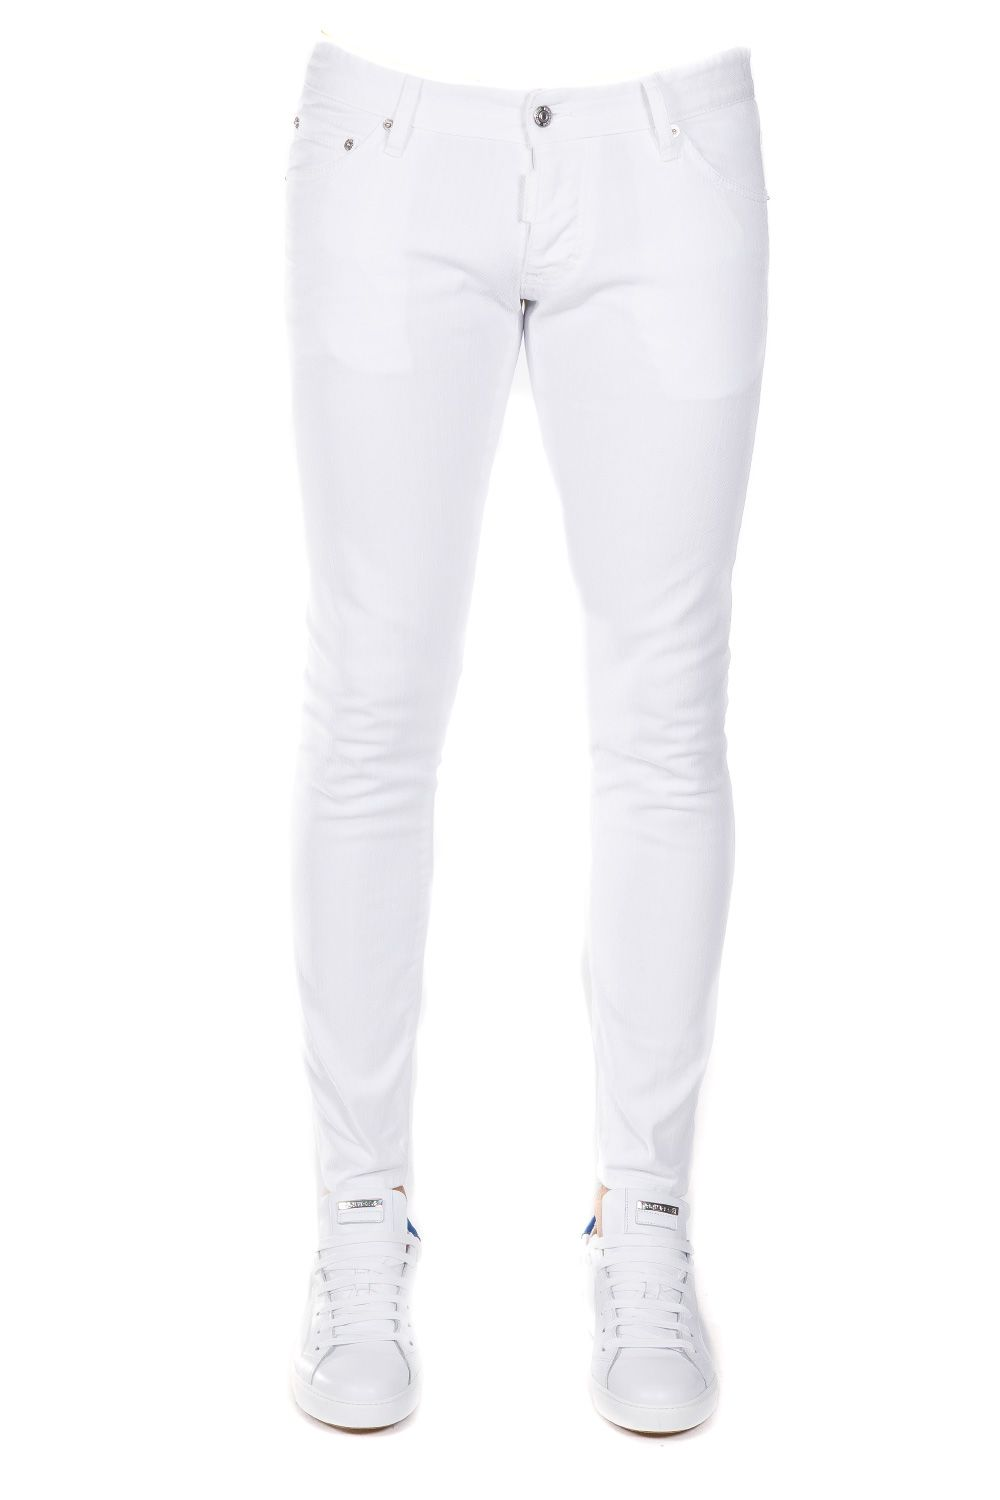 Dsquared2 Skinny Fit Cotton Stretch Jeans